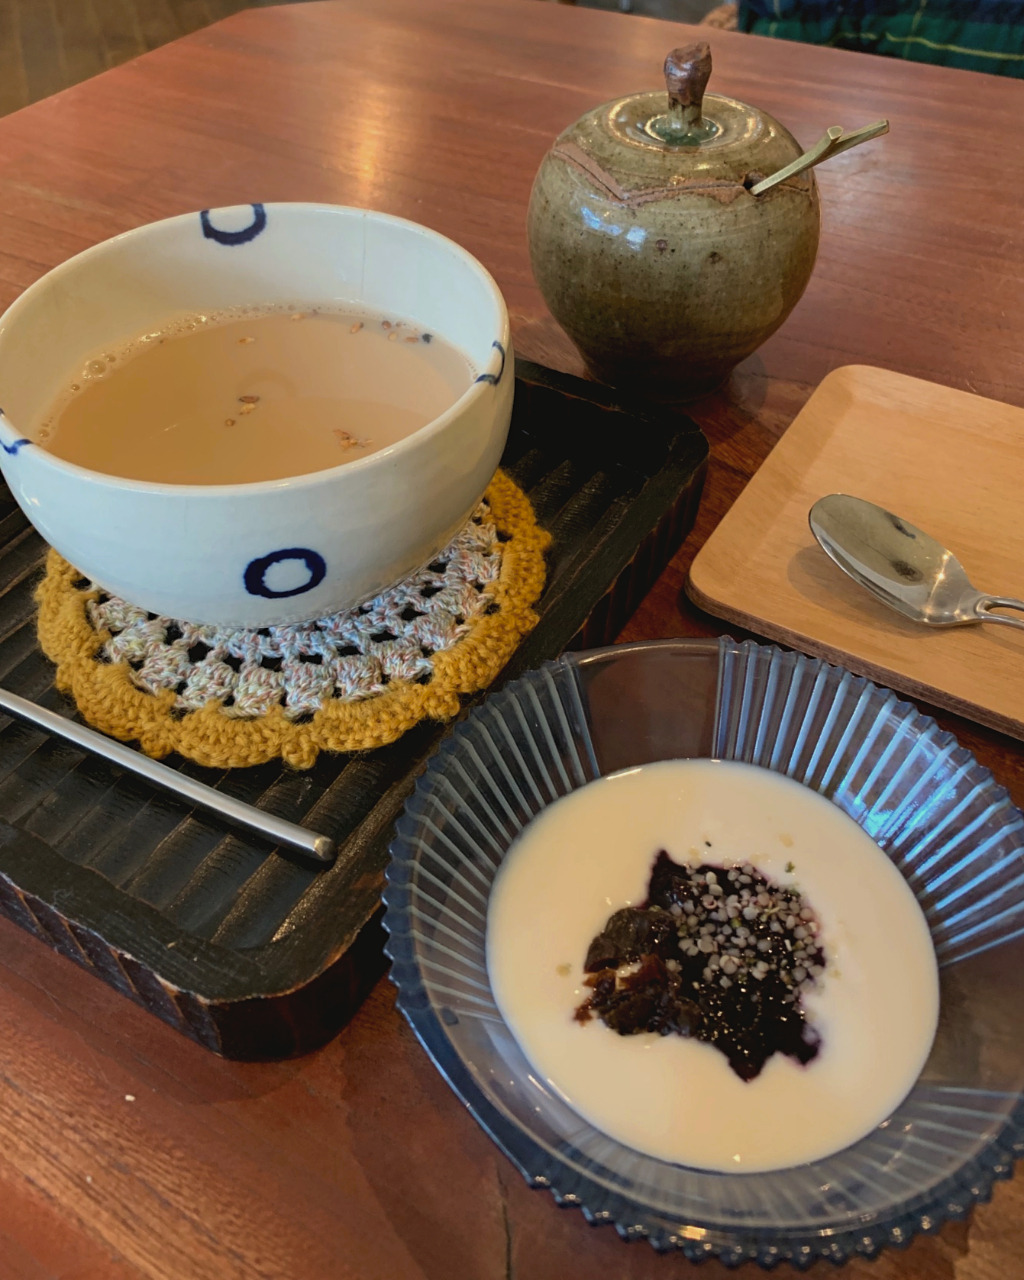 Soy milk yogurt and amazake and soy milk spiced chai for dessert at Ihanoha Vegan Cafe in Kanazawa, Japan